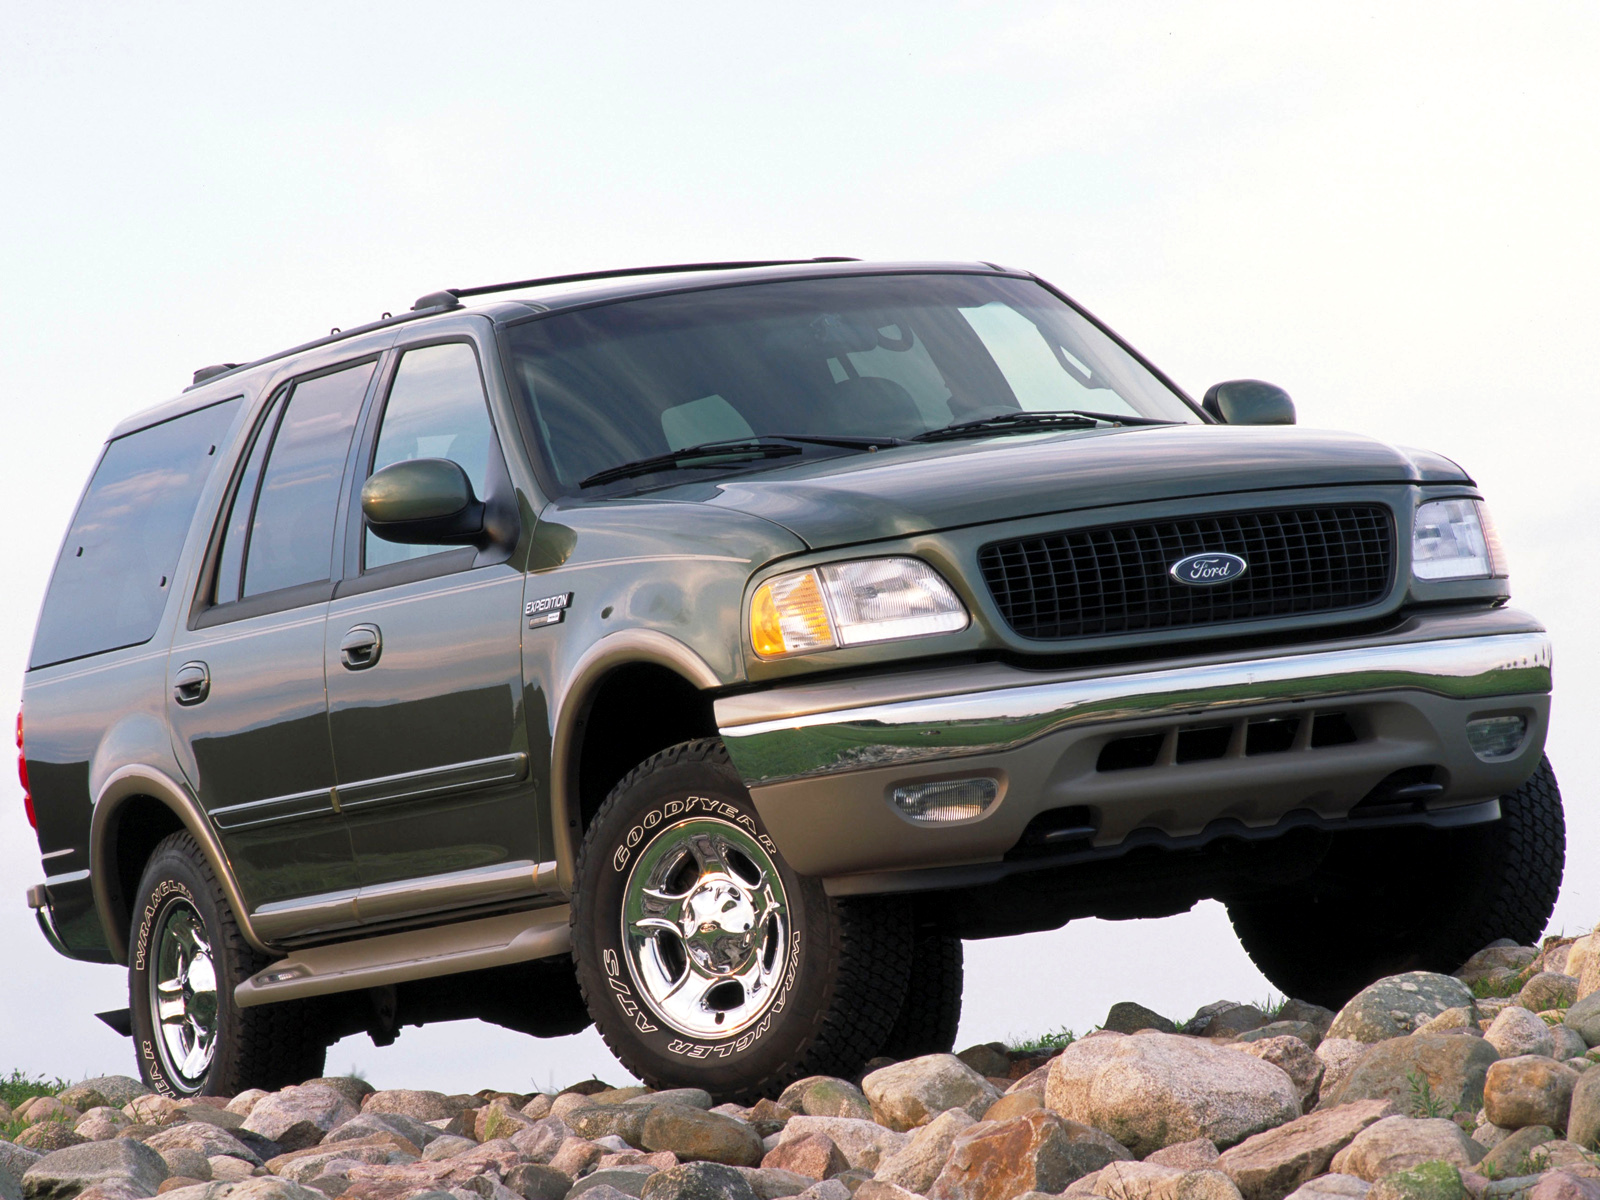 Ford expedition 1998 photo - 6